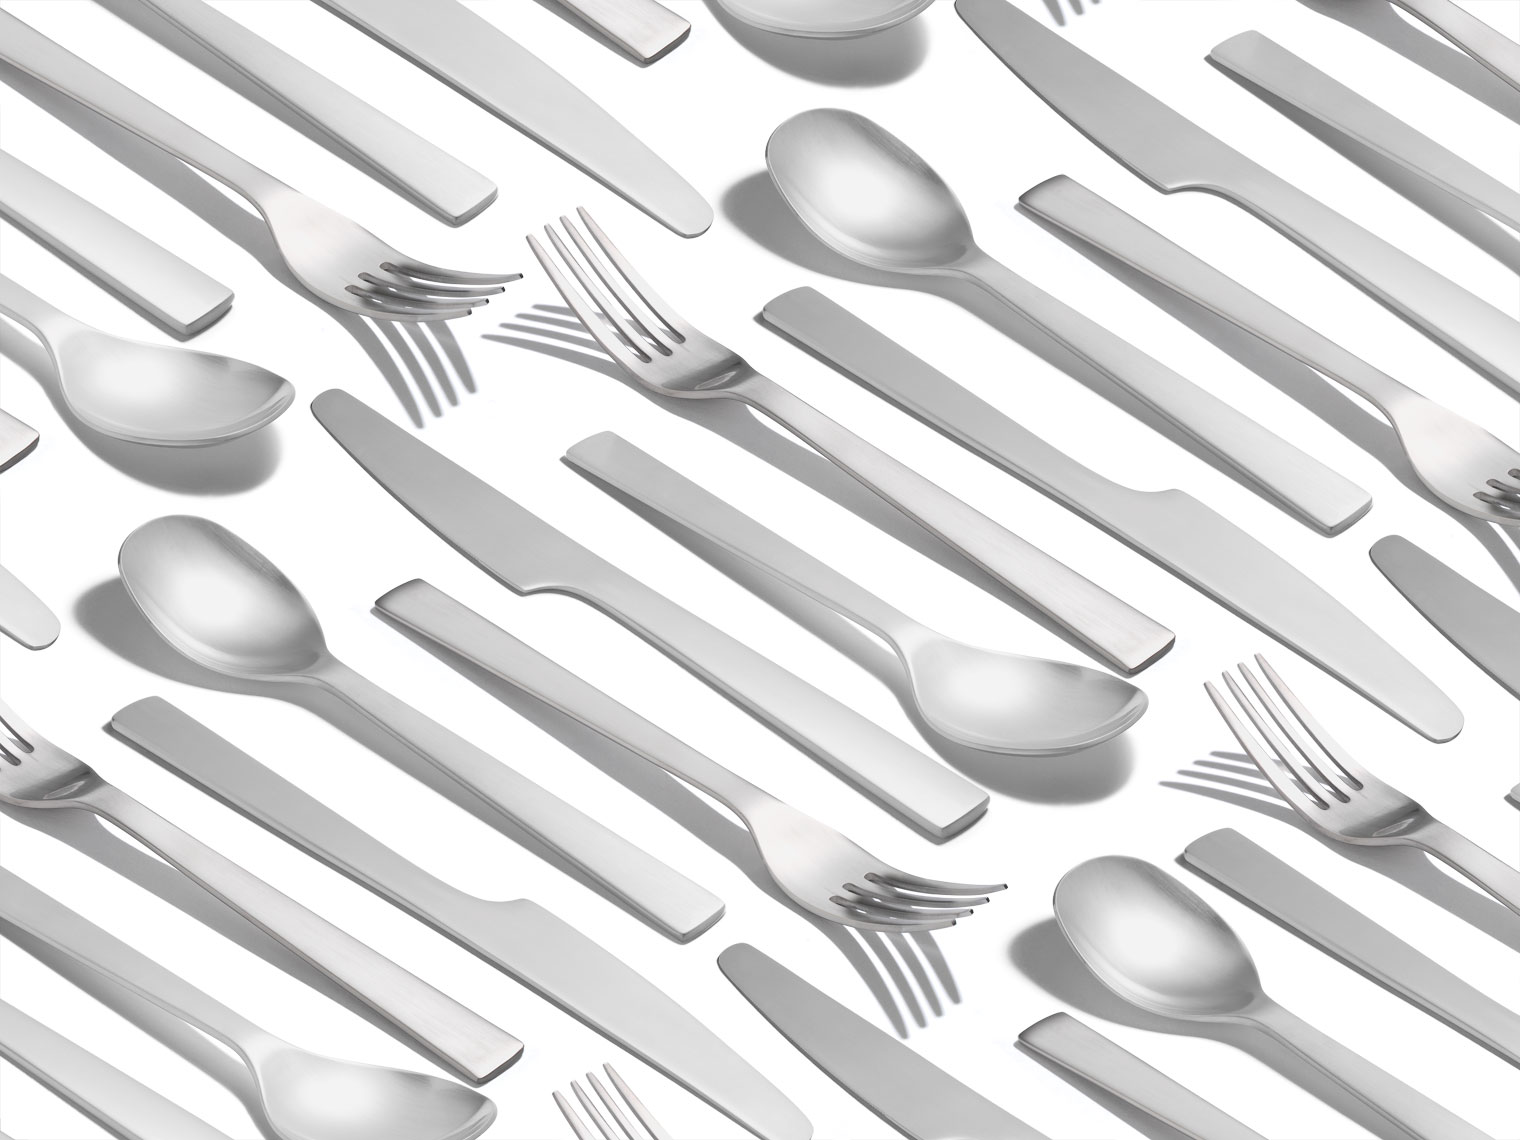 fork spoon knife flatware in a pattern